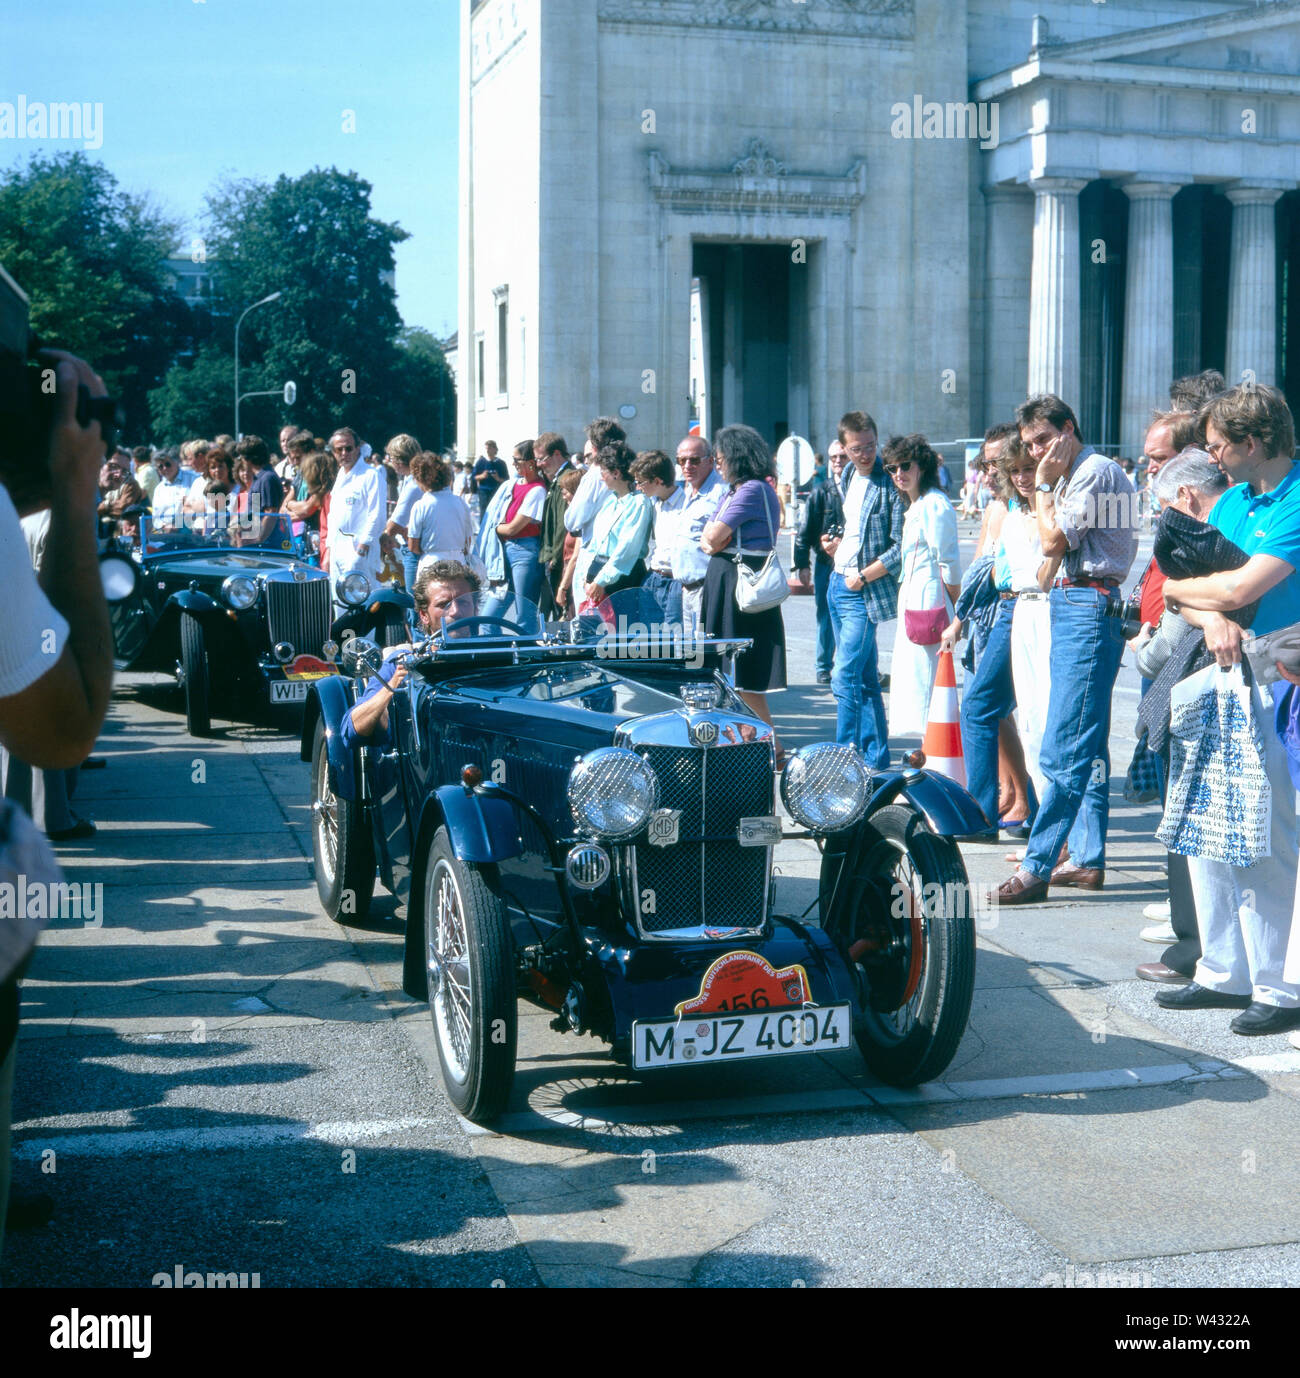 Ein MG Sport Cabrio fährt während einer Präsentation in München Ende der 1980er Jahre vor. An MG Sport Cabrio drives during a presentation in Munich in the late 1980s. - Stock Image